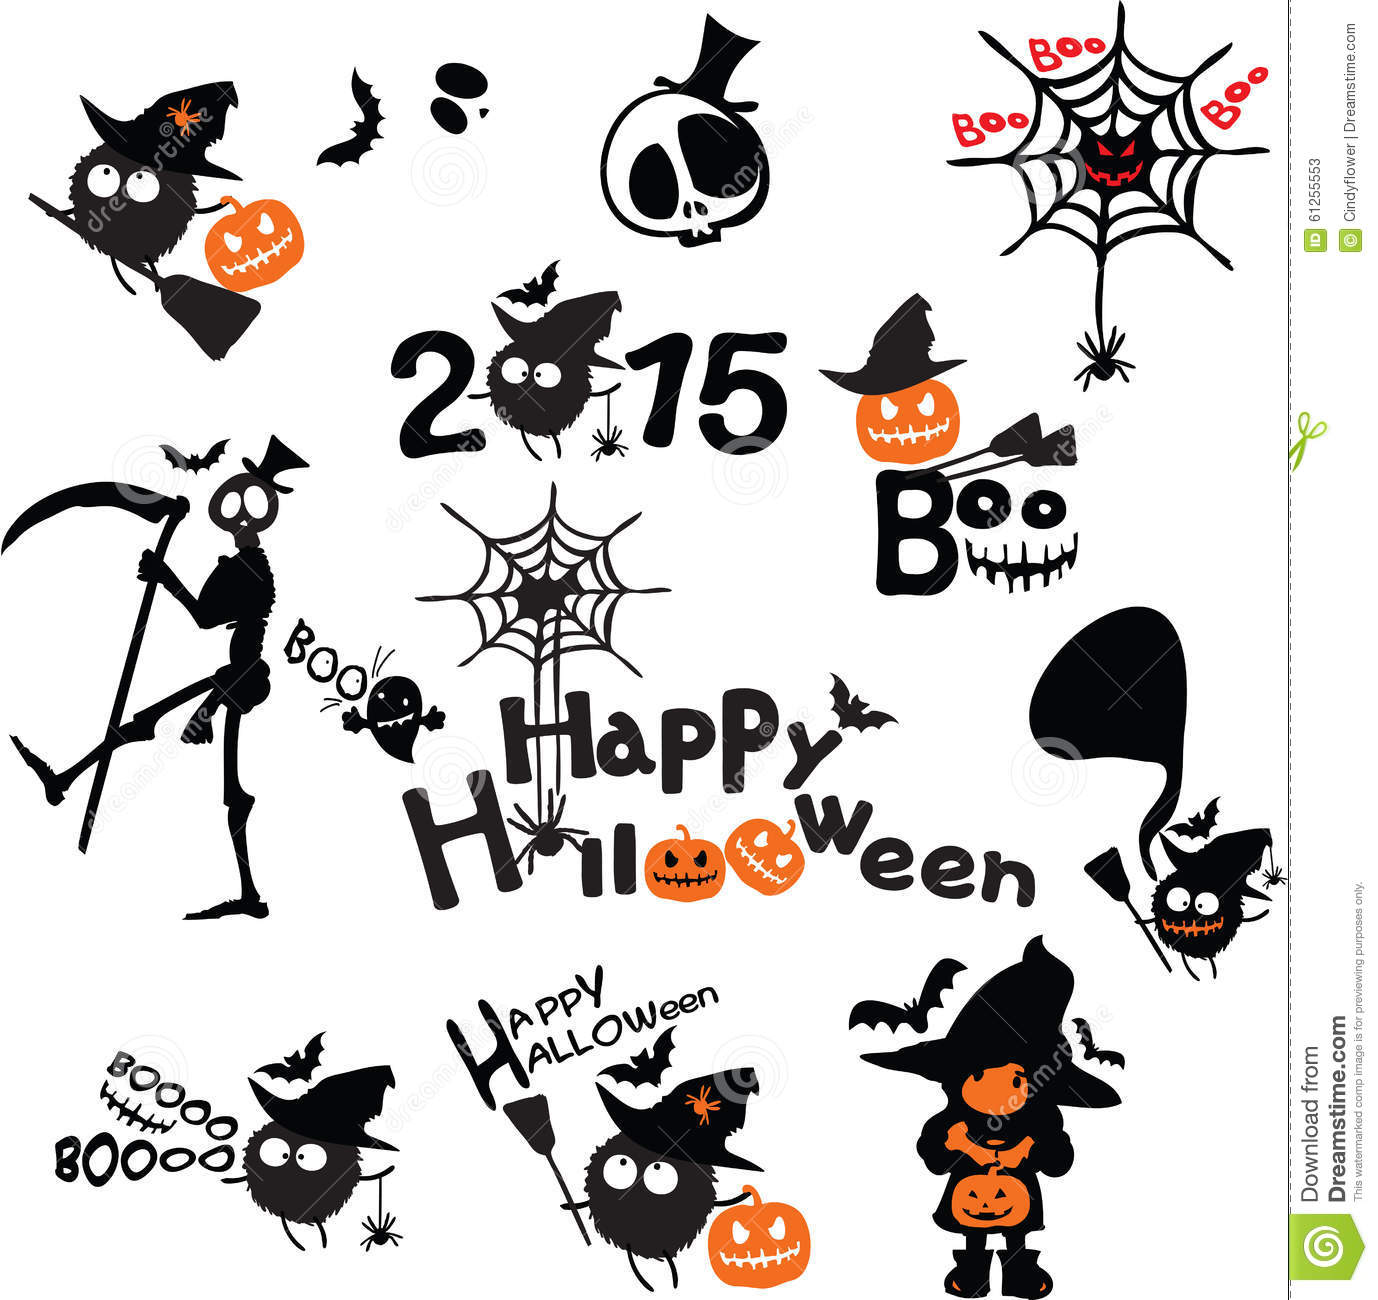 Cute Candy Corn Wallpaper Happy Halloween Horror Icons Set Stock Vector Image